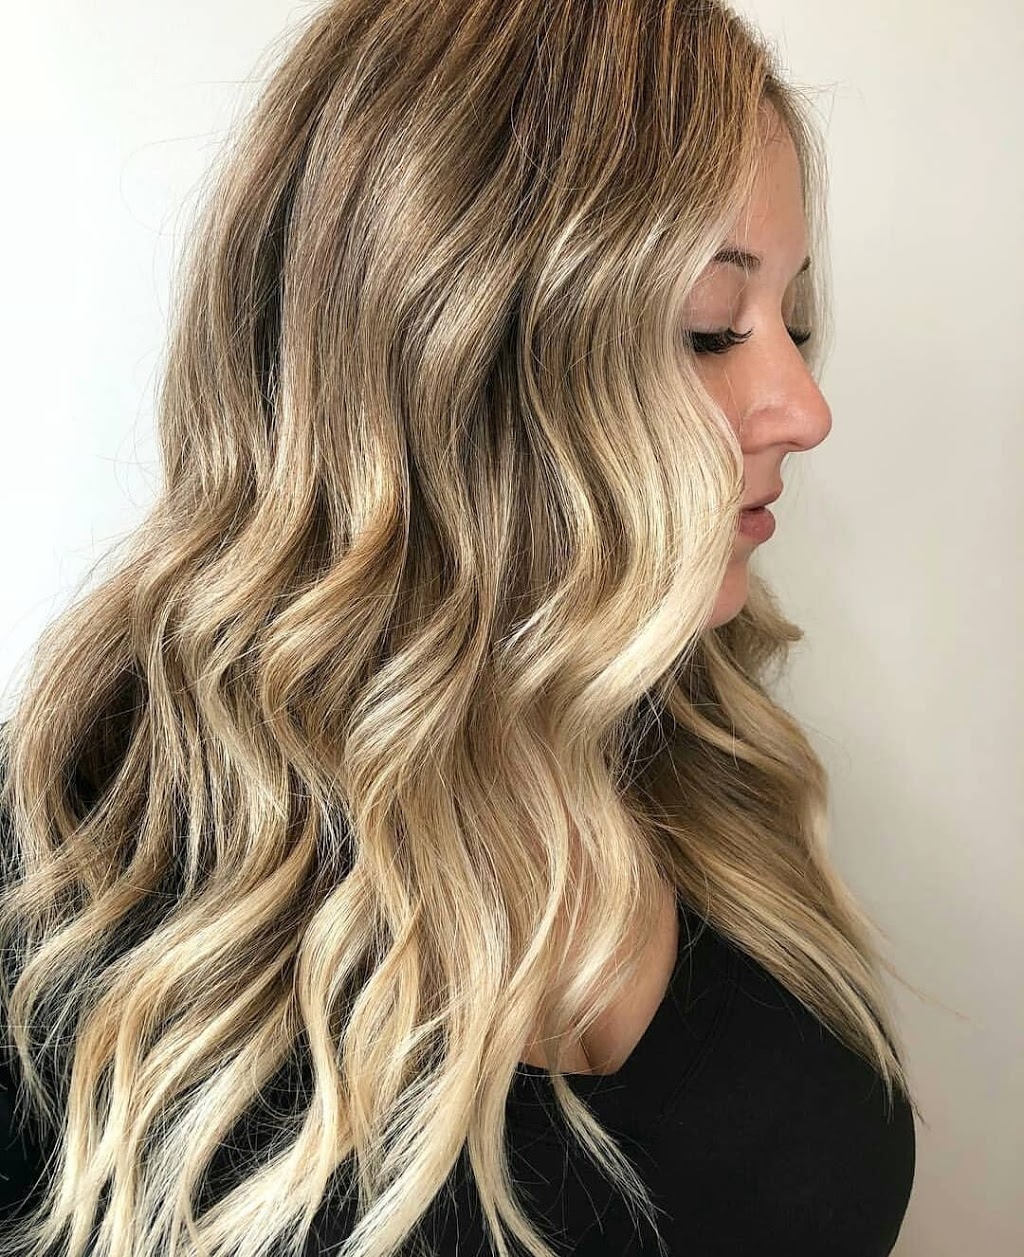 KC & CO. Hair Salon   hair care   5 Campbell St, Whitby, ON L1M 1A4, Canada   9056200292 OR +1 905-620-0292